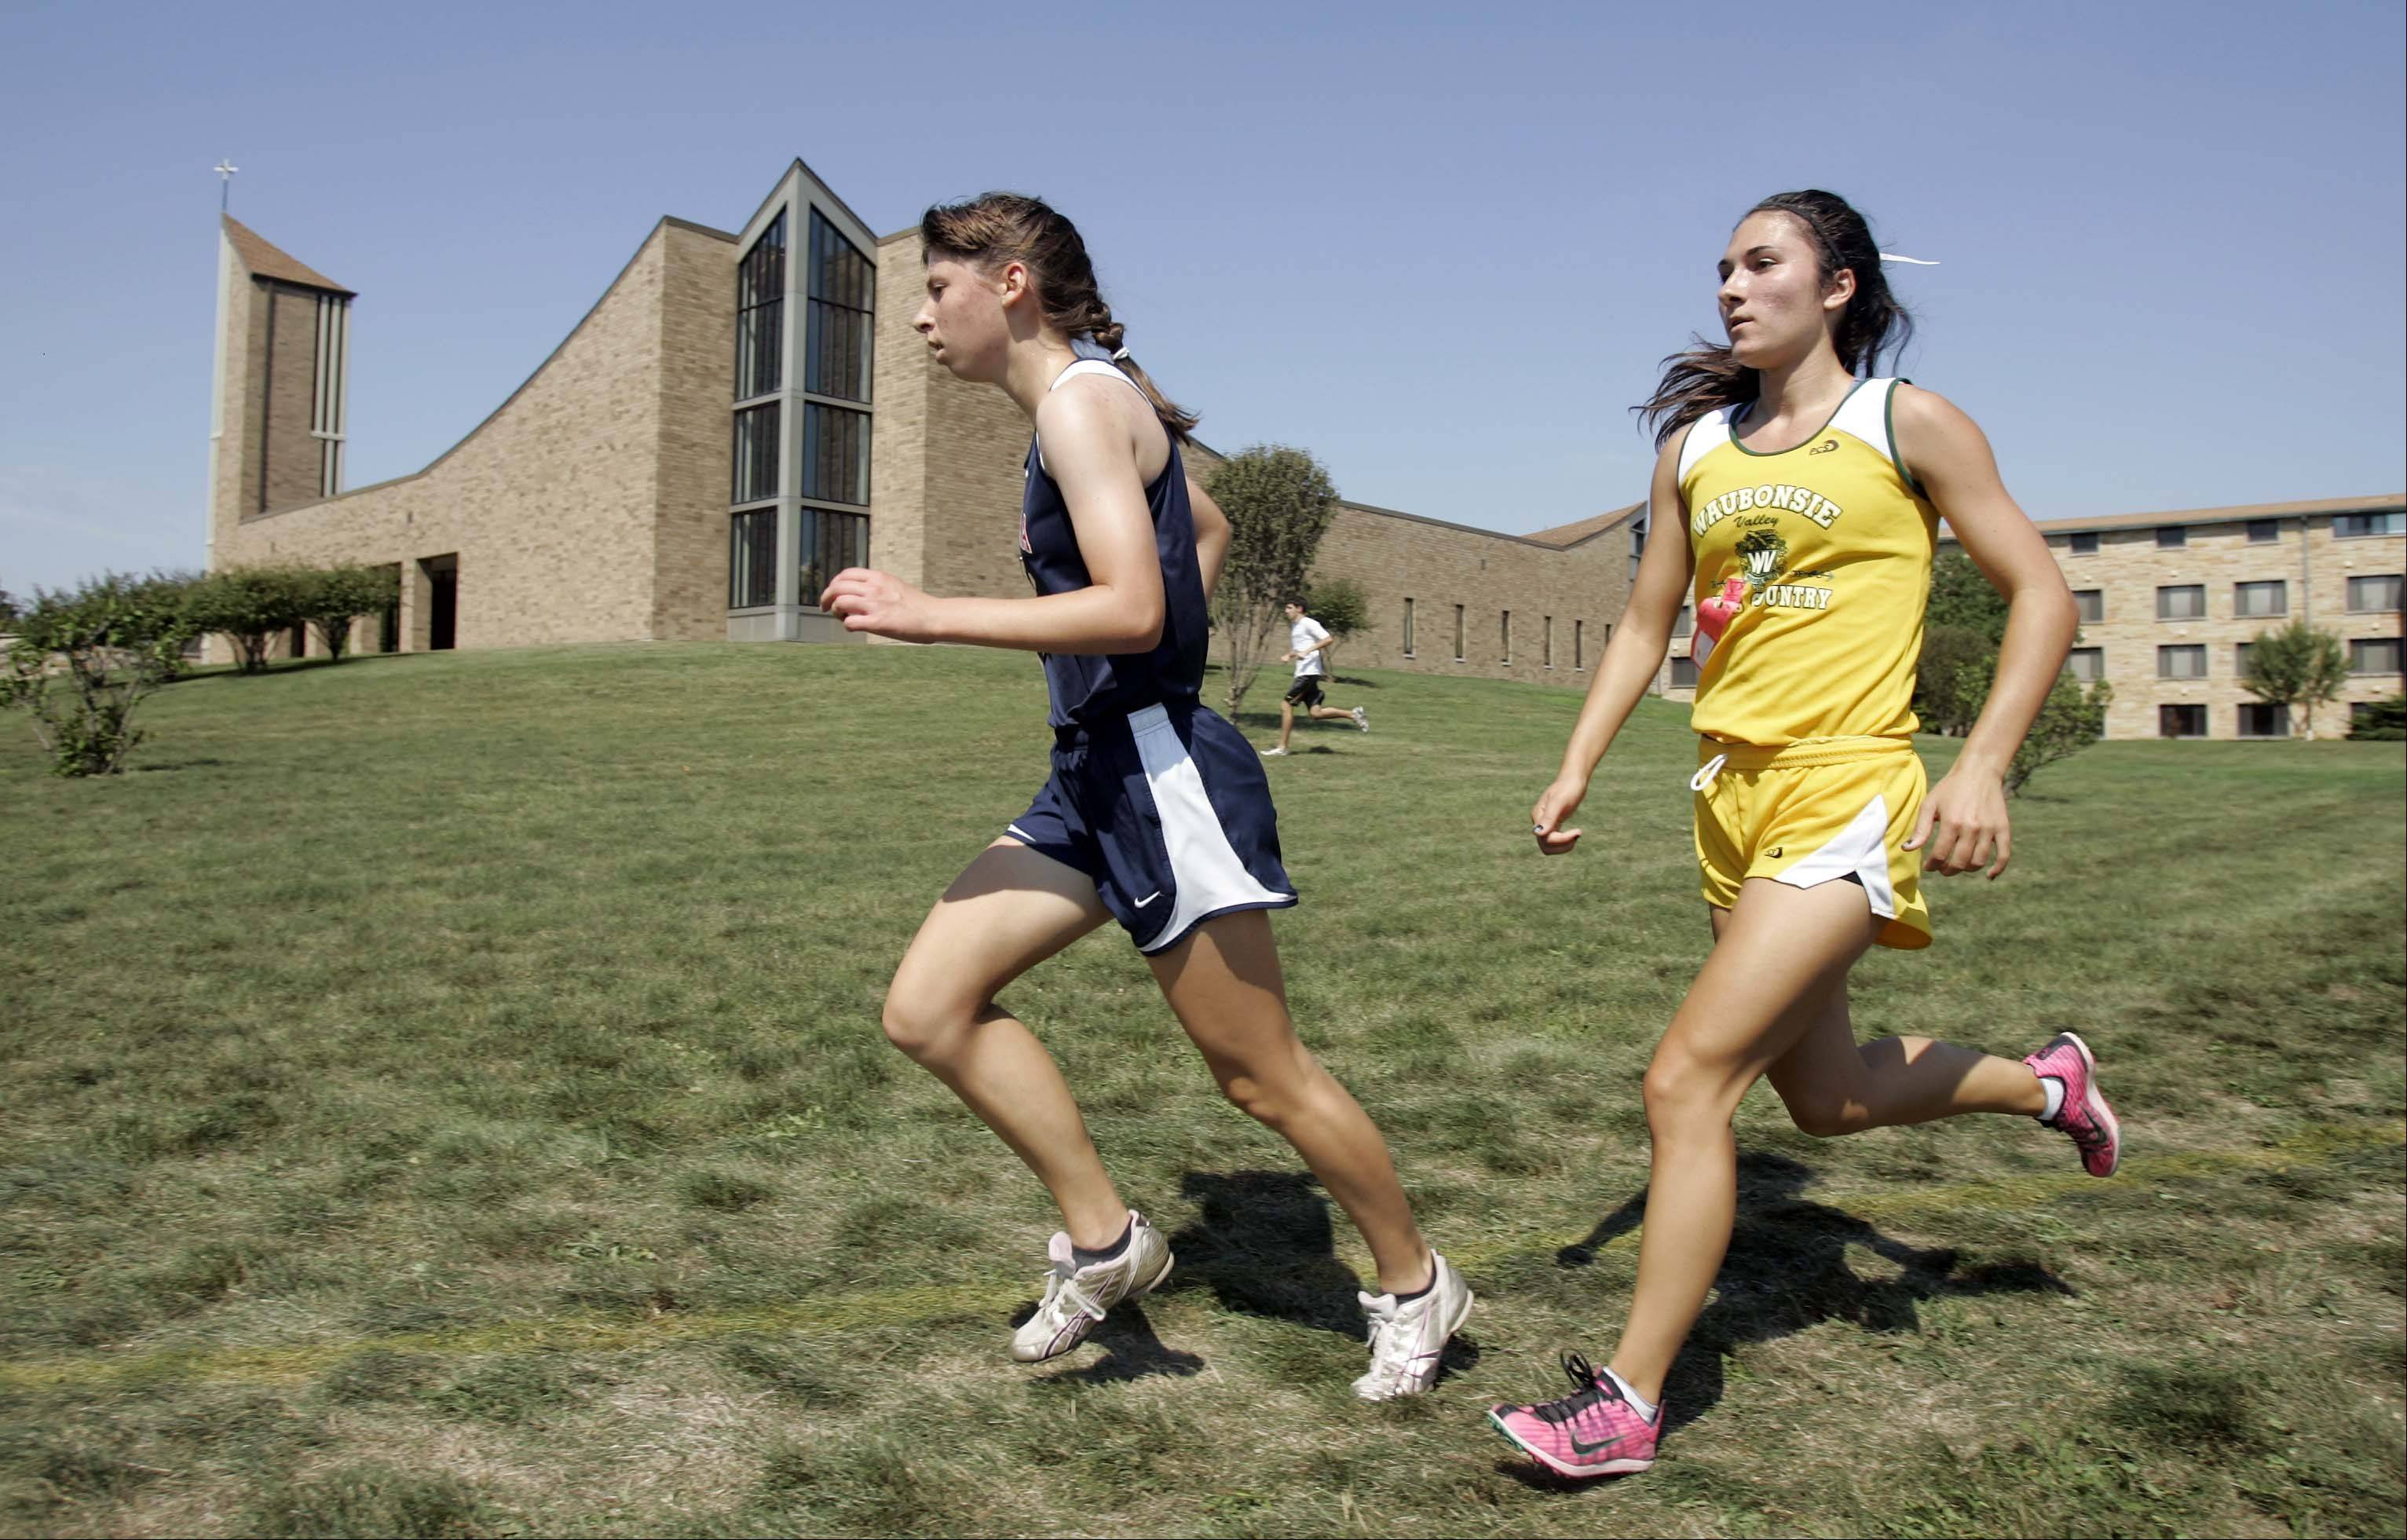 West Aurora's Miranda Gollwitzer, left, and Waubonsie Valley's Ashley Bruner make their way past the abbey during the Aurora girls cross county meet at Marmion Saturday August 25, 2012.